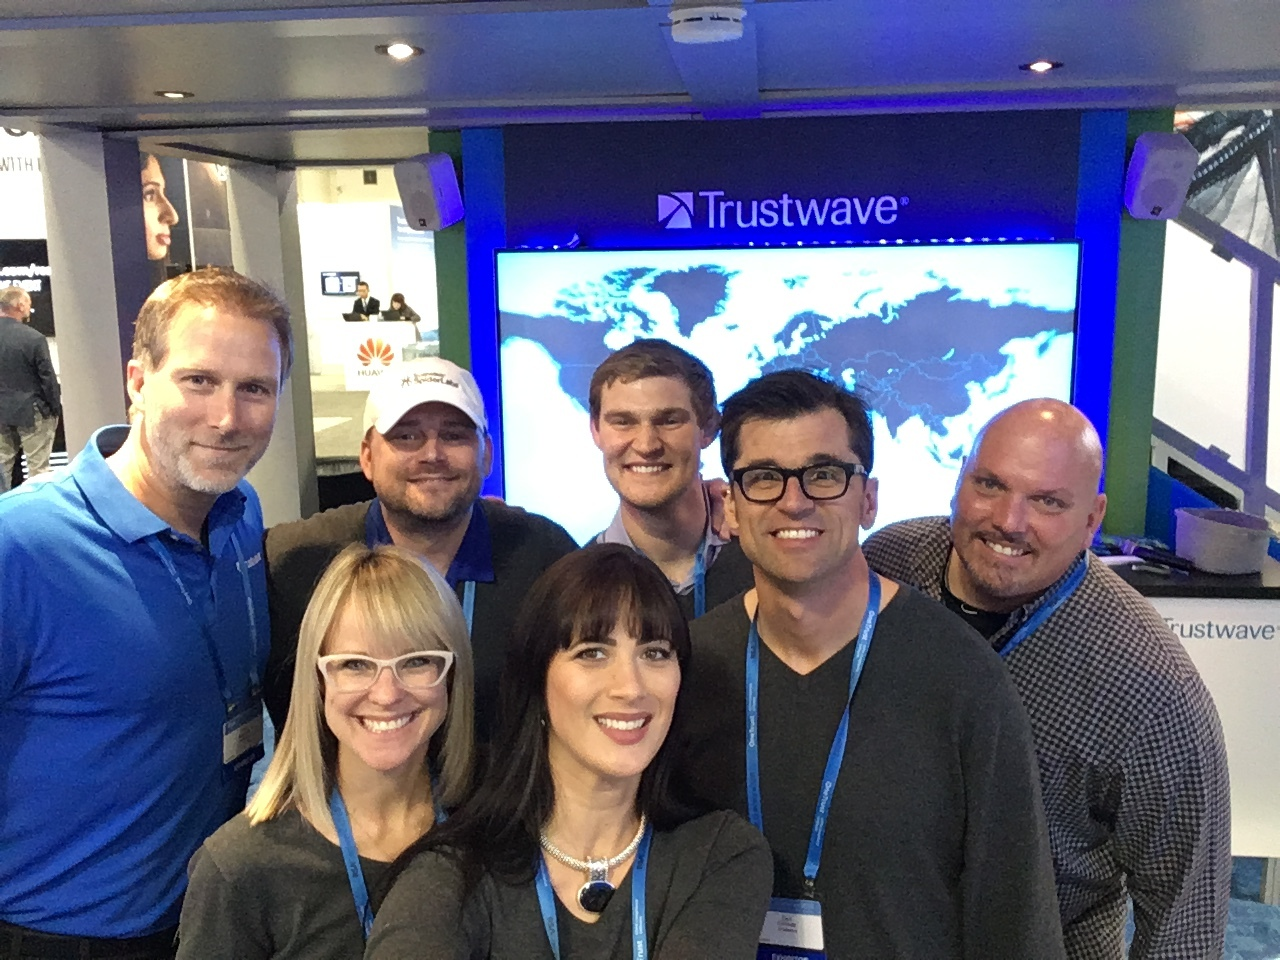 Trade show presenting for the Trustwave crew at RSA 2018